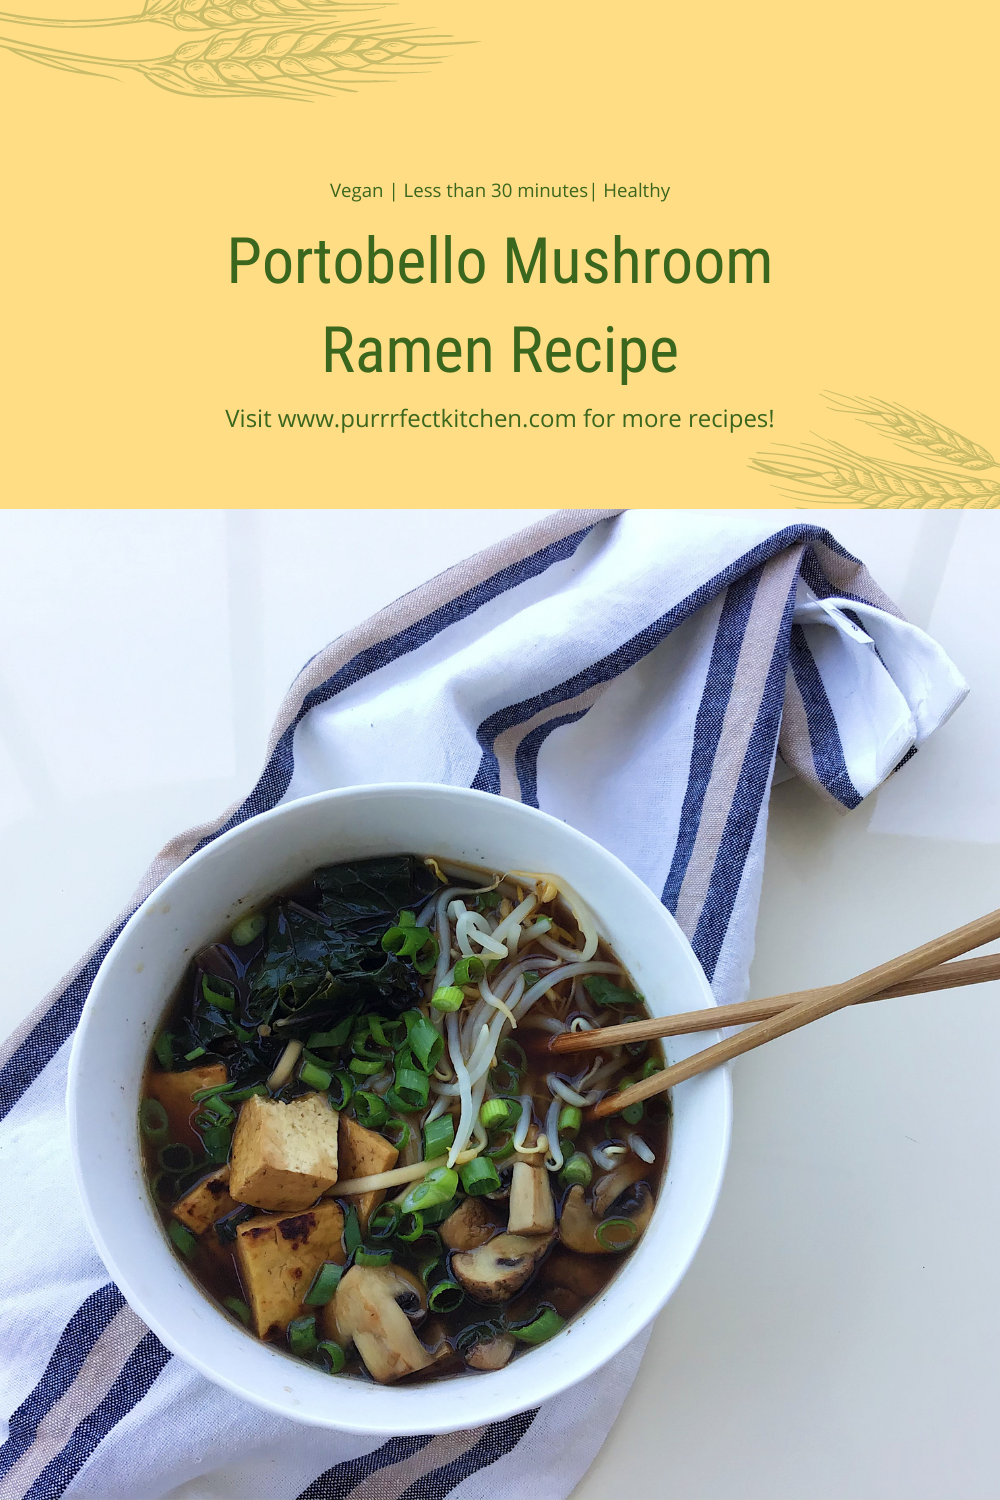 Purrrfect kitchen pinterest pin vegan ramen